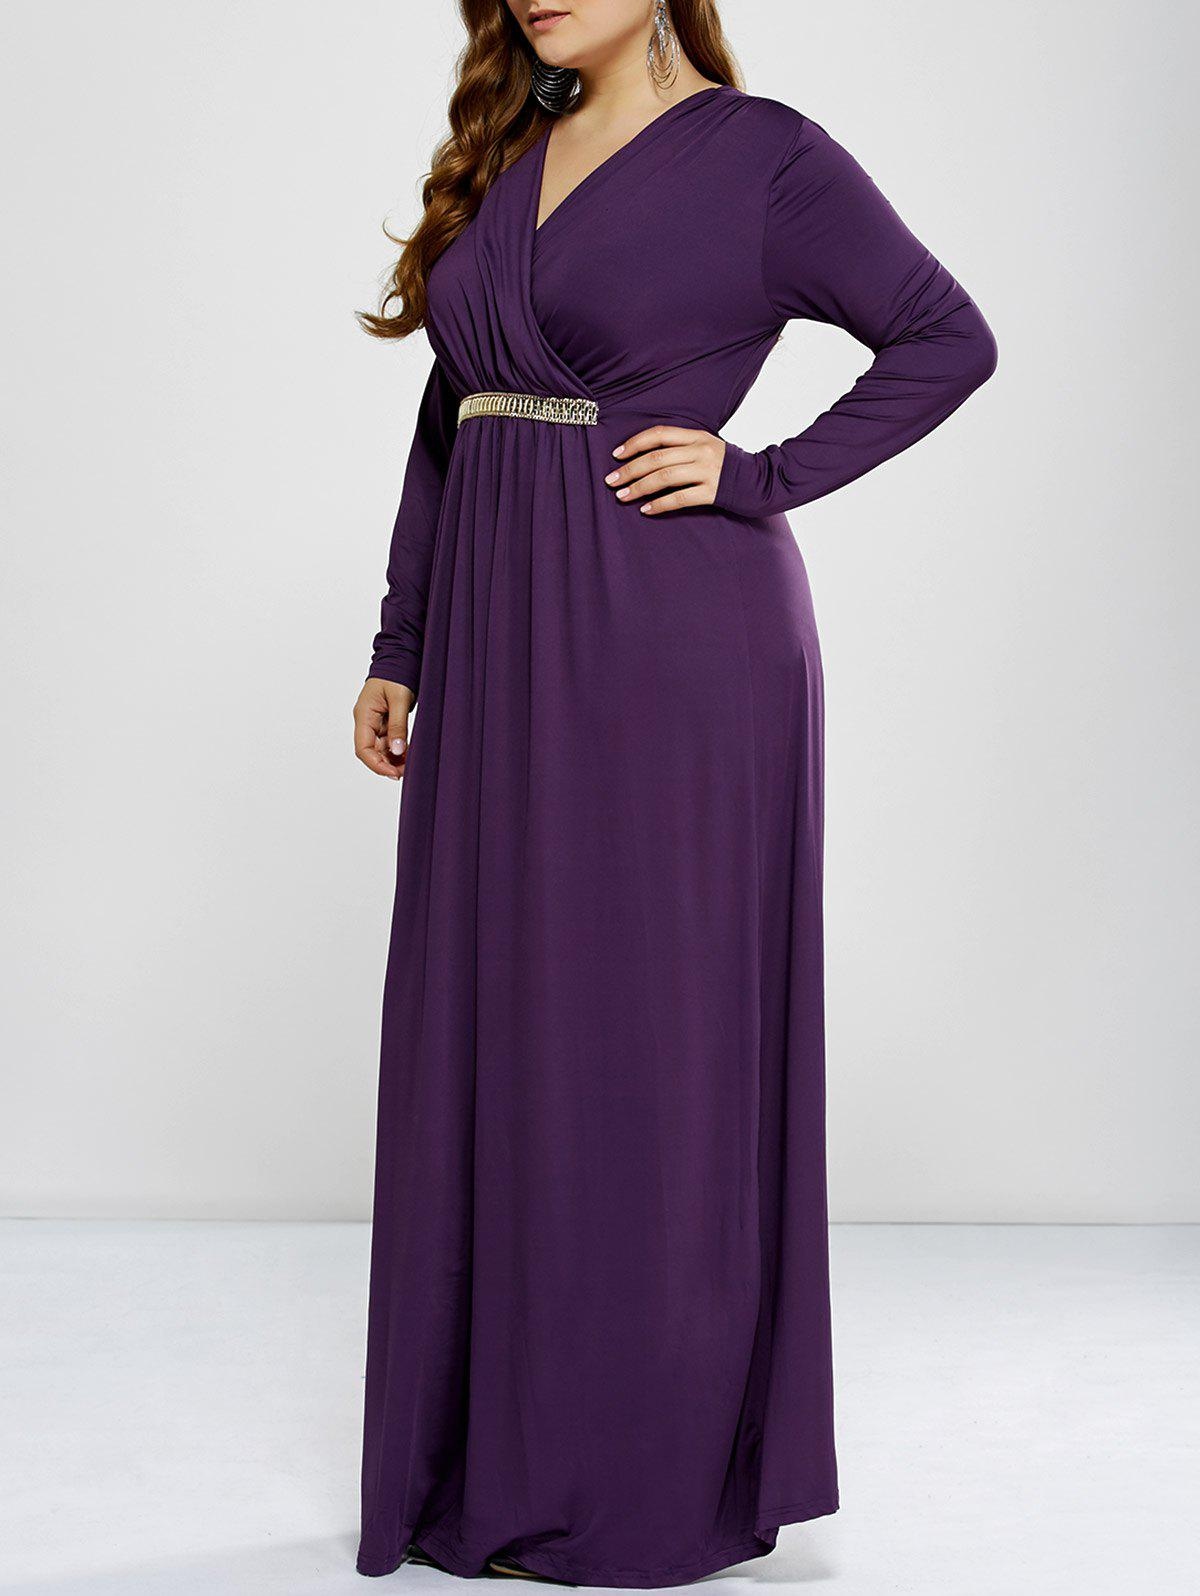 Plus Size Maxi Surplice Long Sleeve Prom DressWOMEN<br><br>Size: 2XL; Color: PURPLE; Style: Club; Material: Polyester; Silhouette: A-Line; Dresses Length: Floor-Length; Neckline: V-Neck; Sleeve Length: Long Sleeves; Pattern Type: Solid; With Belt: No; Season: Fall,Spring; Weight: 0.477kg; Package Contents: 1 x Dress;